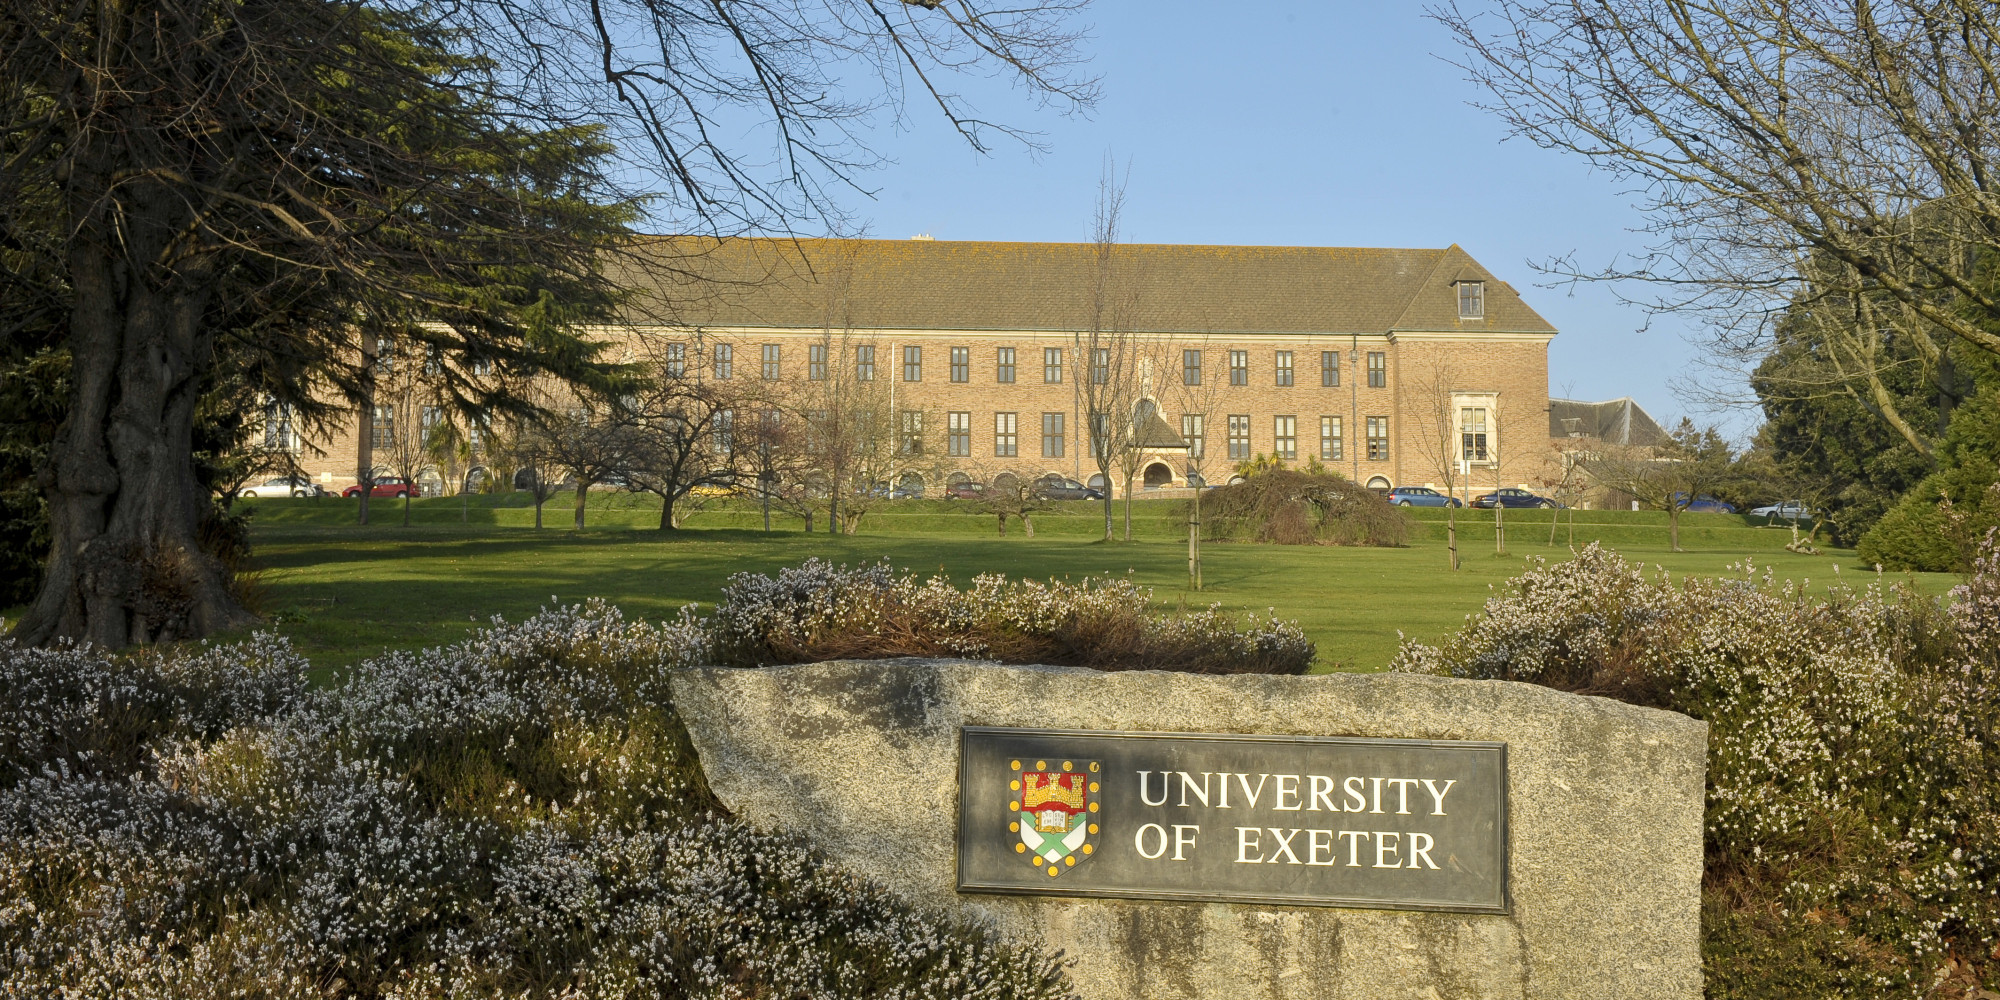 A general view of Exeter University, Exeter, Devon.